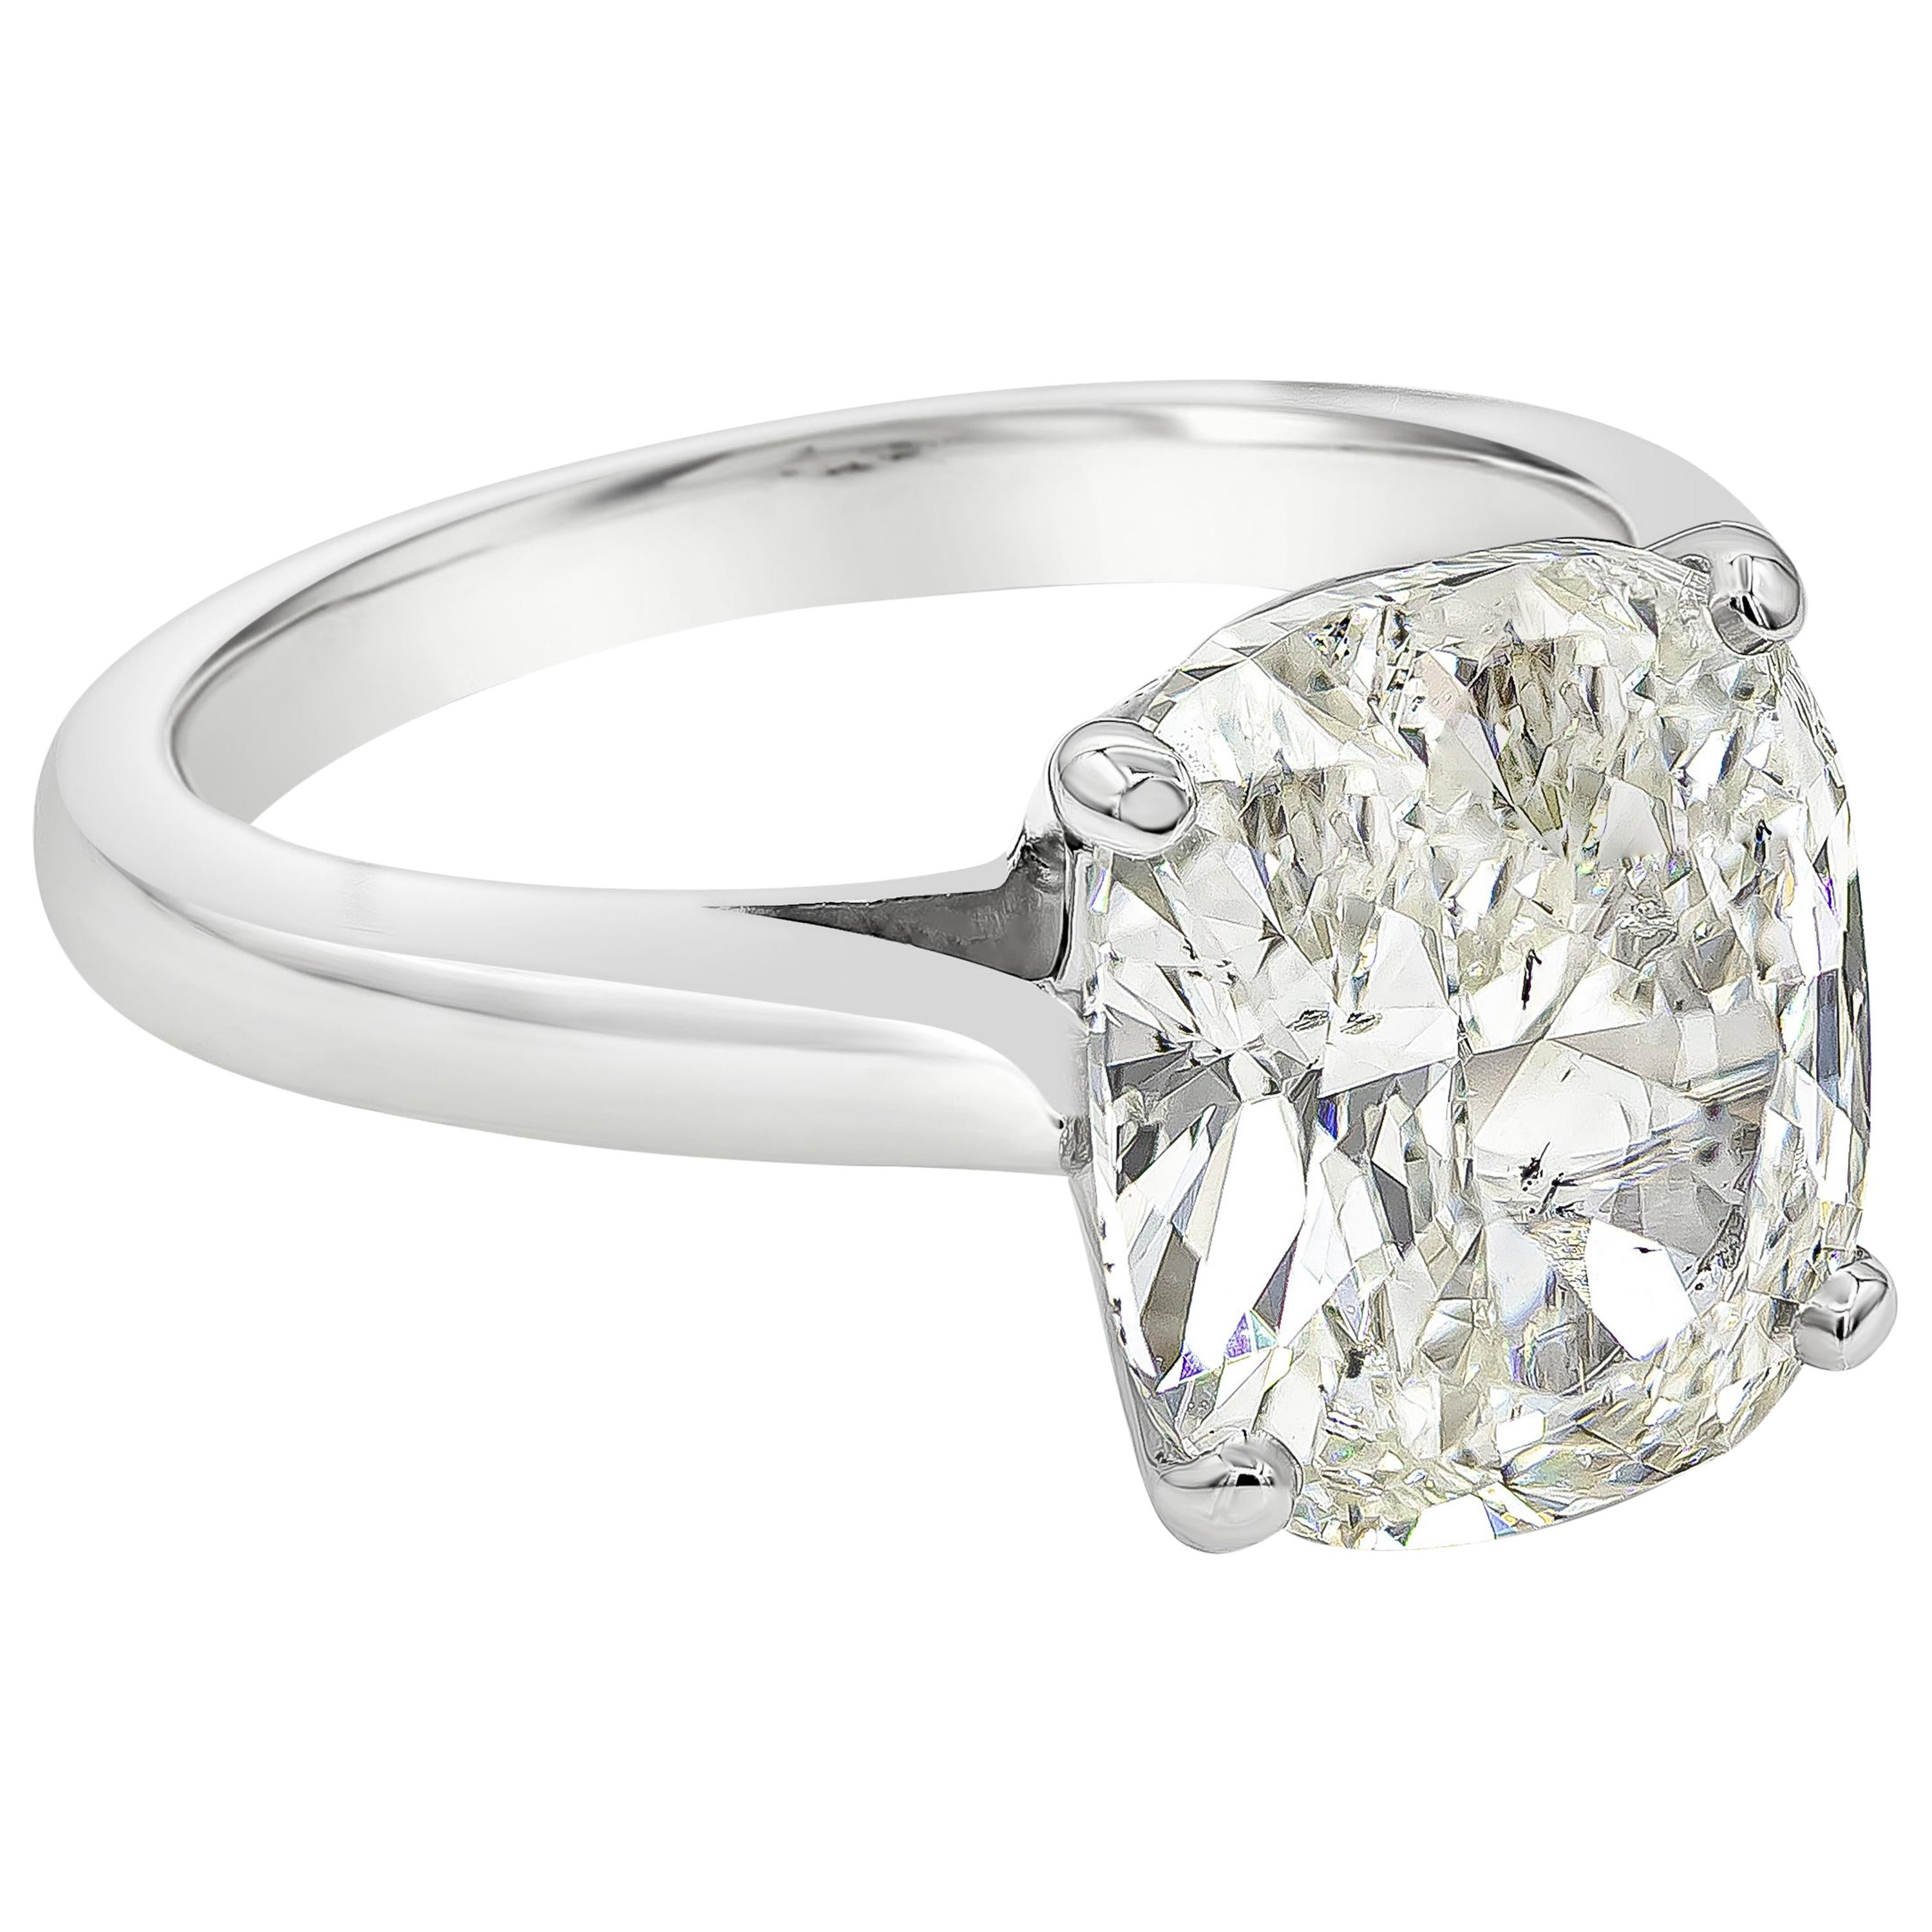 GIA Certified 4.01 Carat Cushion Diamond Solitaire Engagement Ring